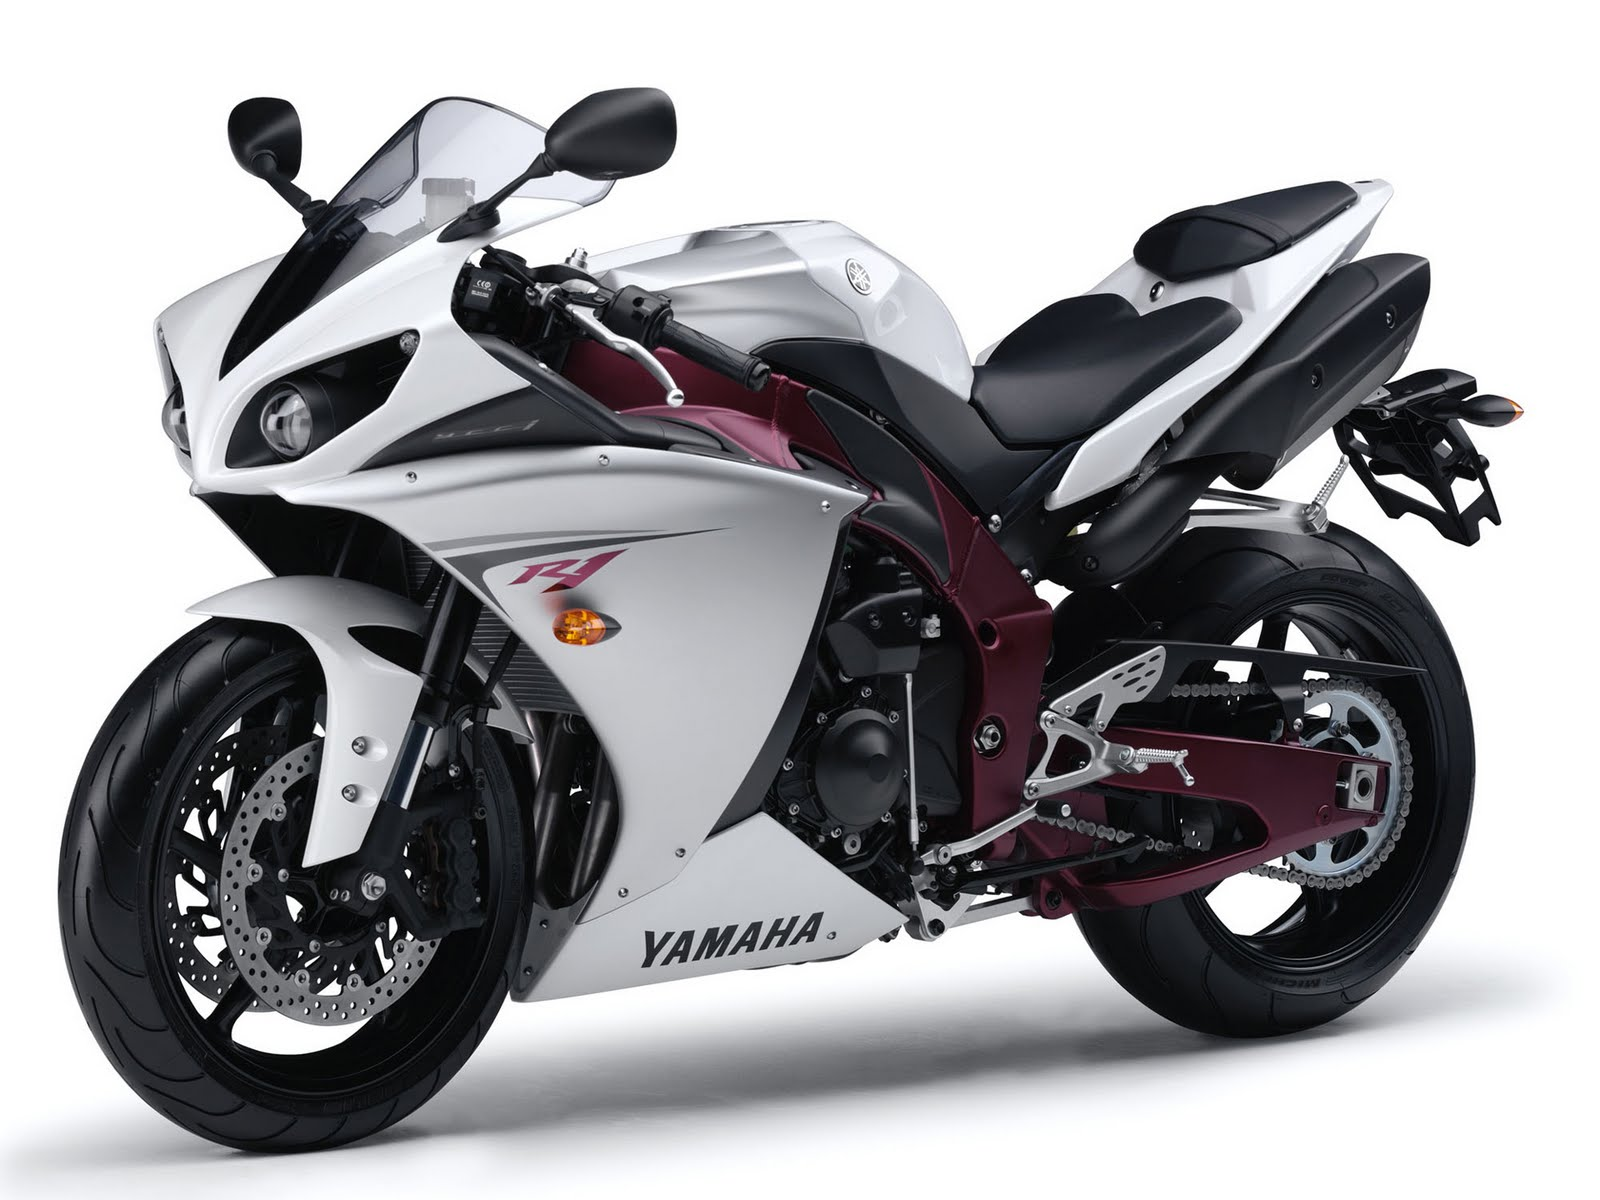 yamaha bikes beautiful cool wallpapers